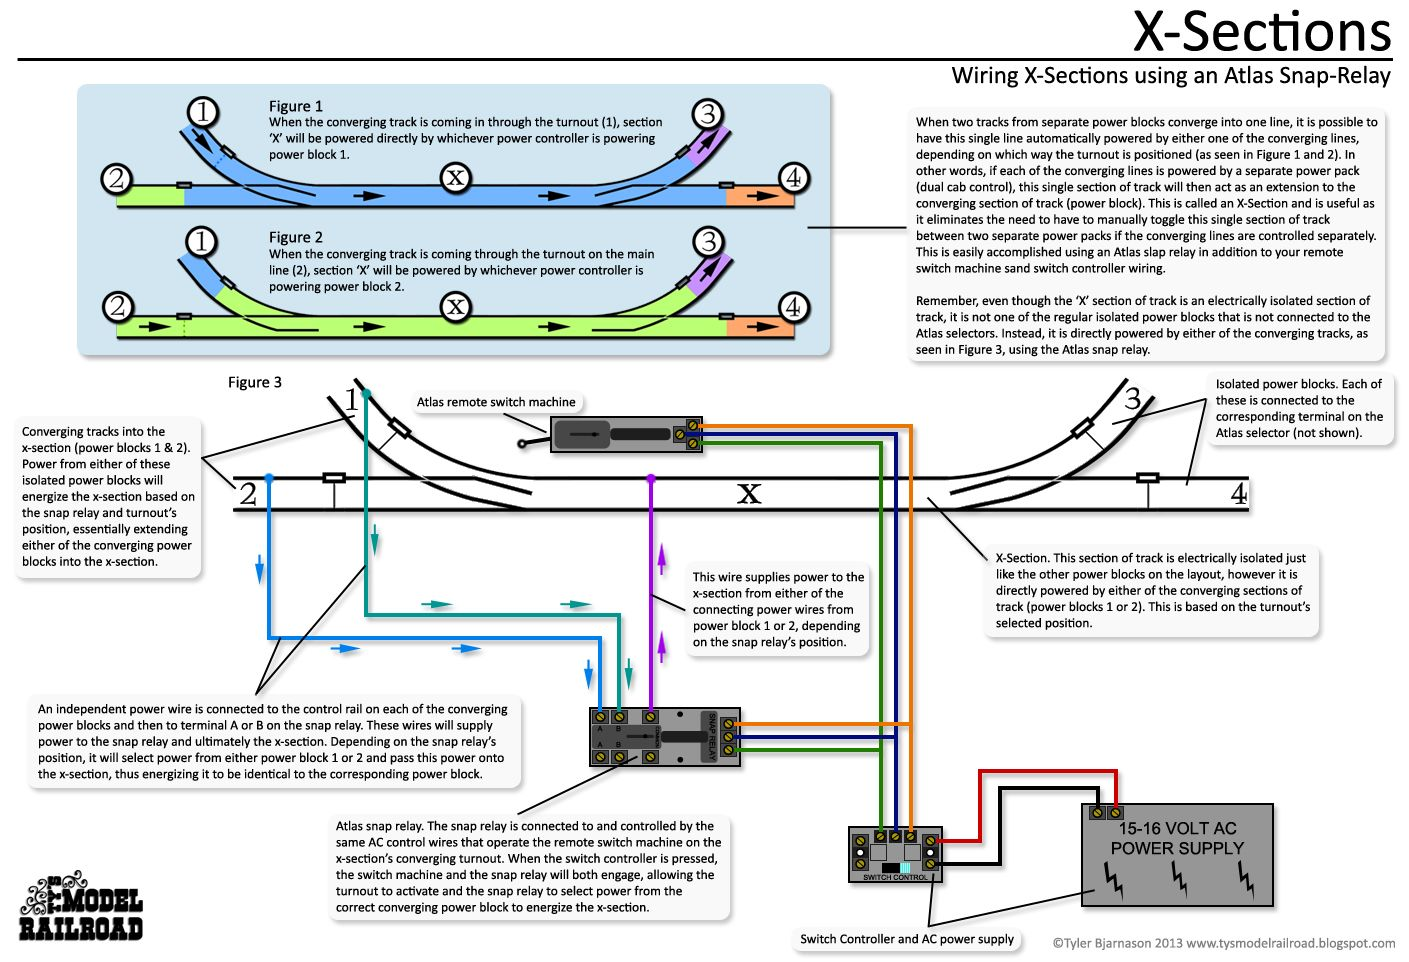 small resolution of how to wire an x section using an atlas snap relay and existing atlas train track wiring atlas track wiring